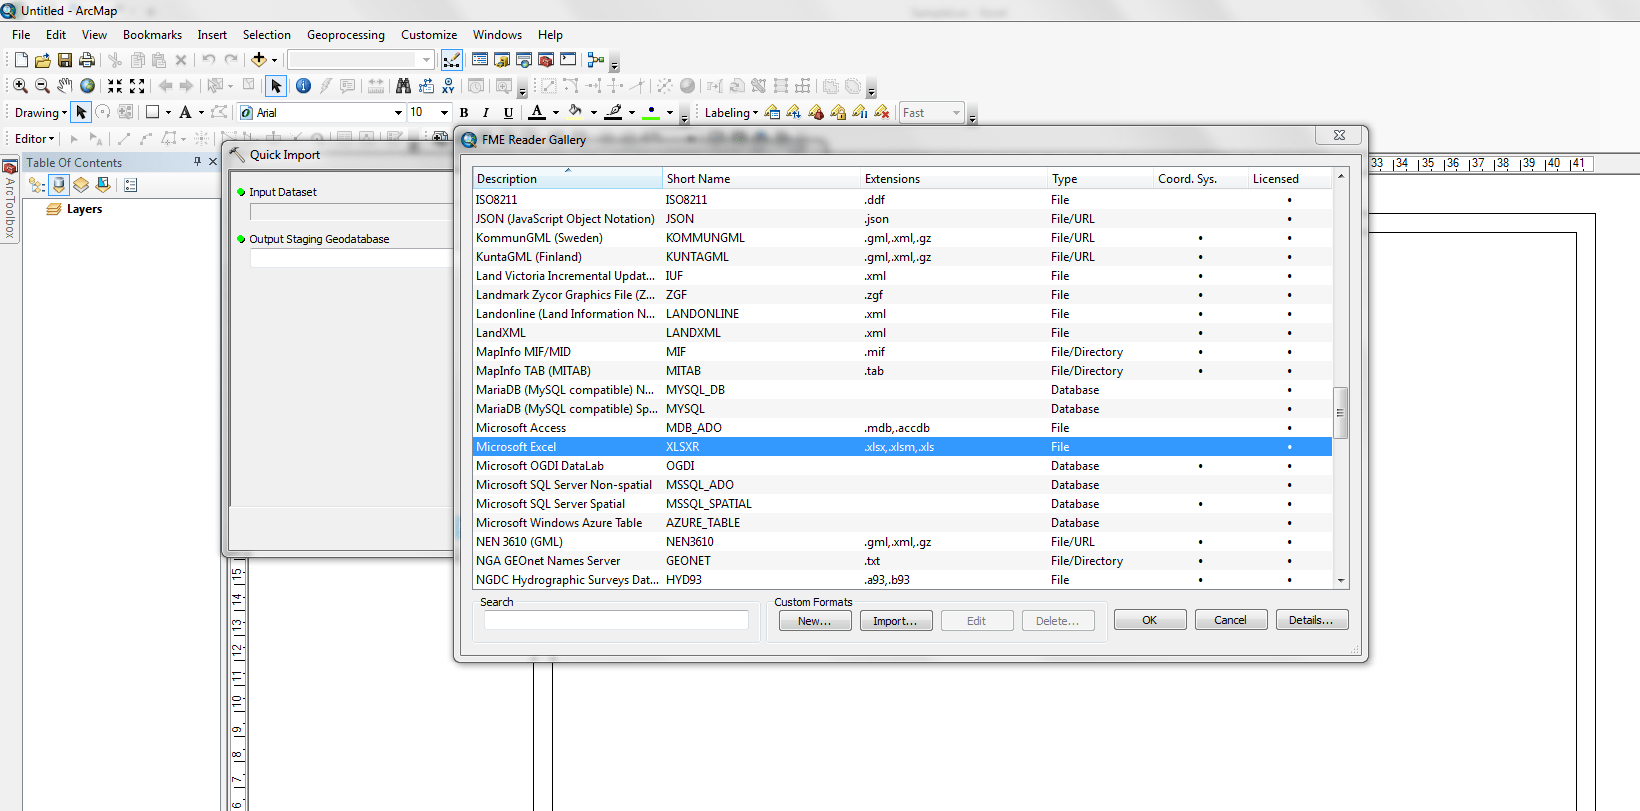 How To Import Microsoft Excel Data To Arcgis 10 2